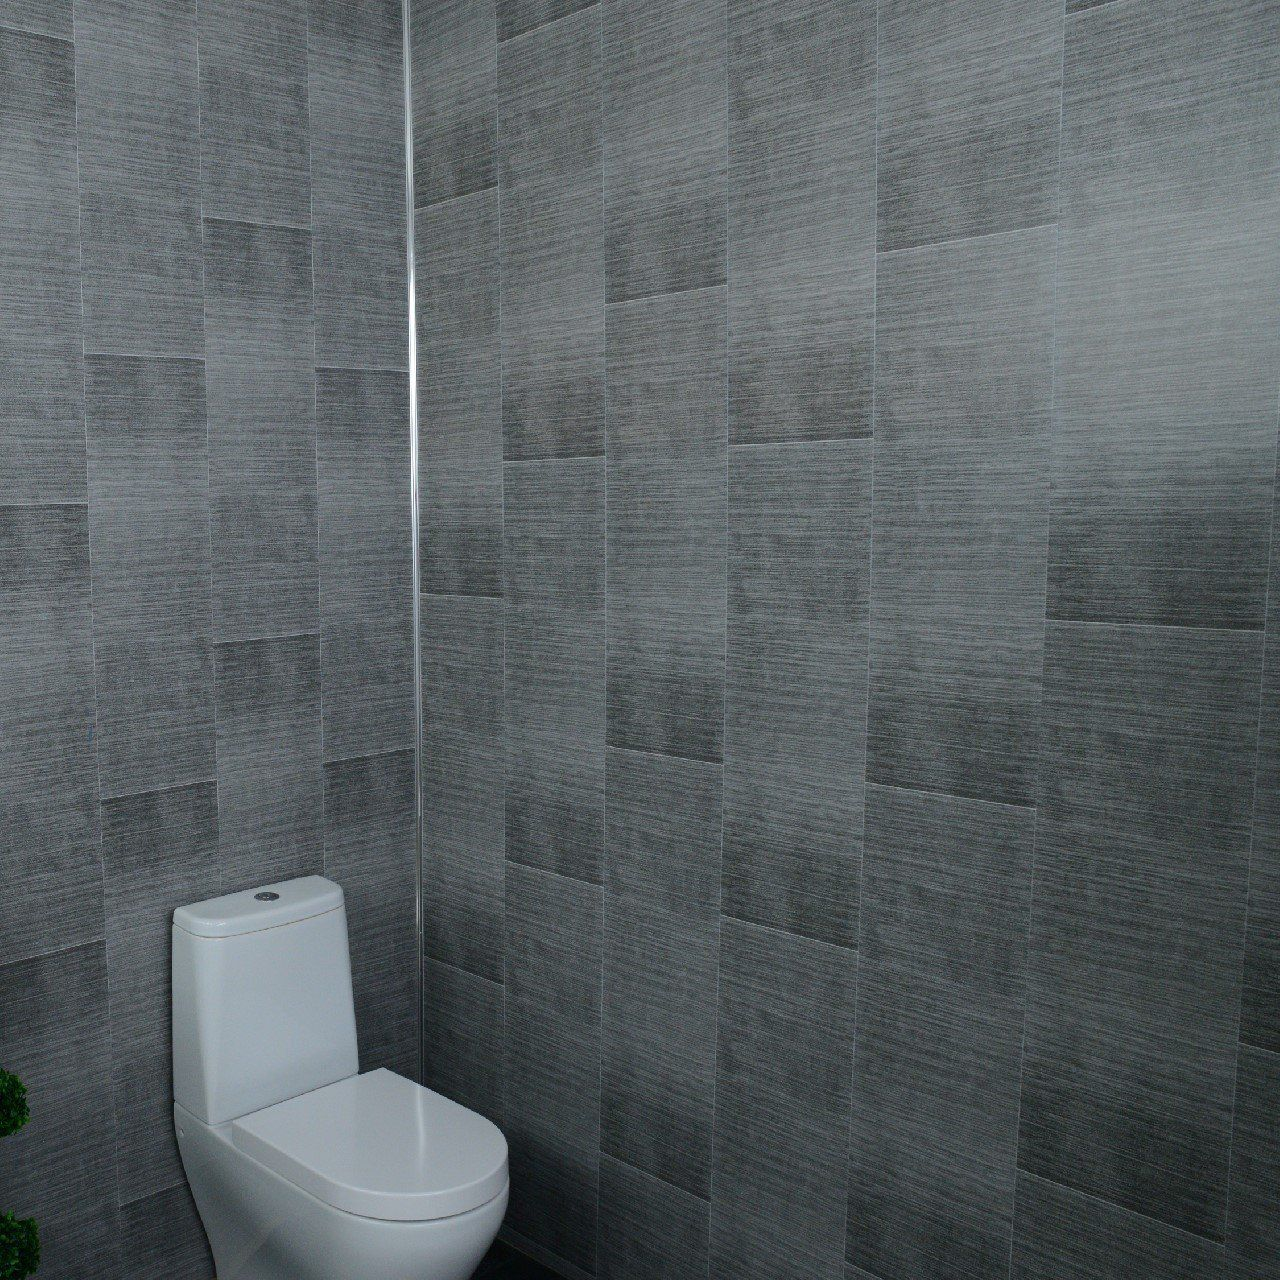 Dark Grey Bathroom Wall Panels Large Tile Effect Small Tile Effect Cladding Panels Kitchen Shower Wetr Gray Bathroom Walls Grey Bathrooms Cladding Panels